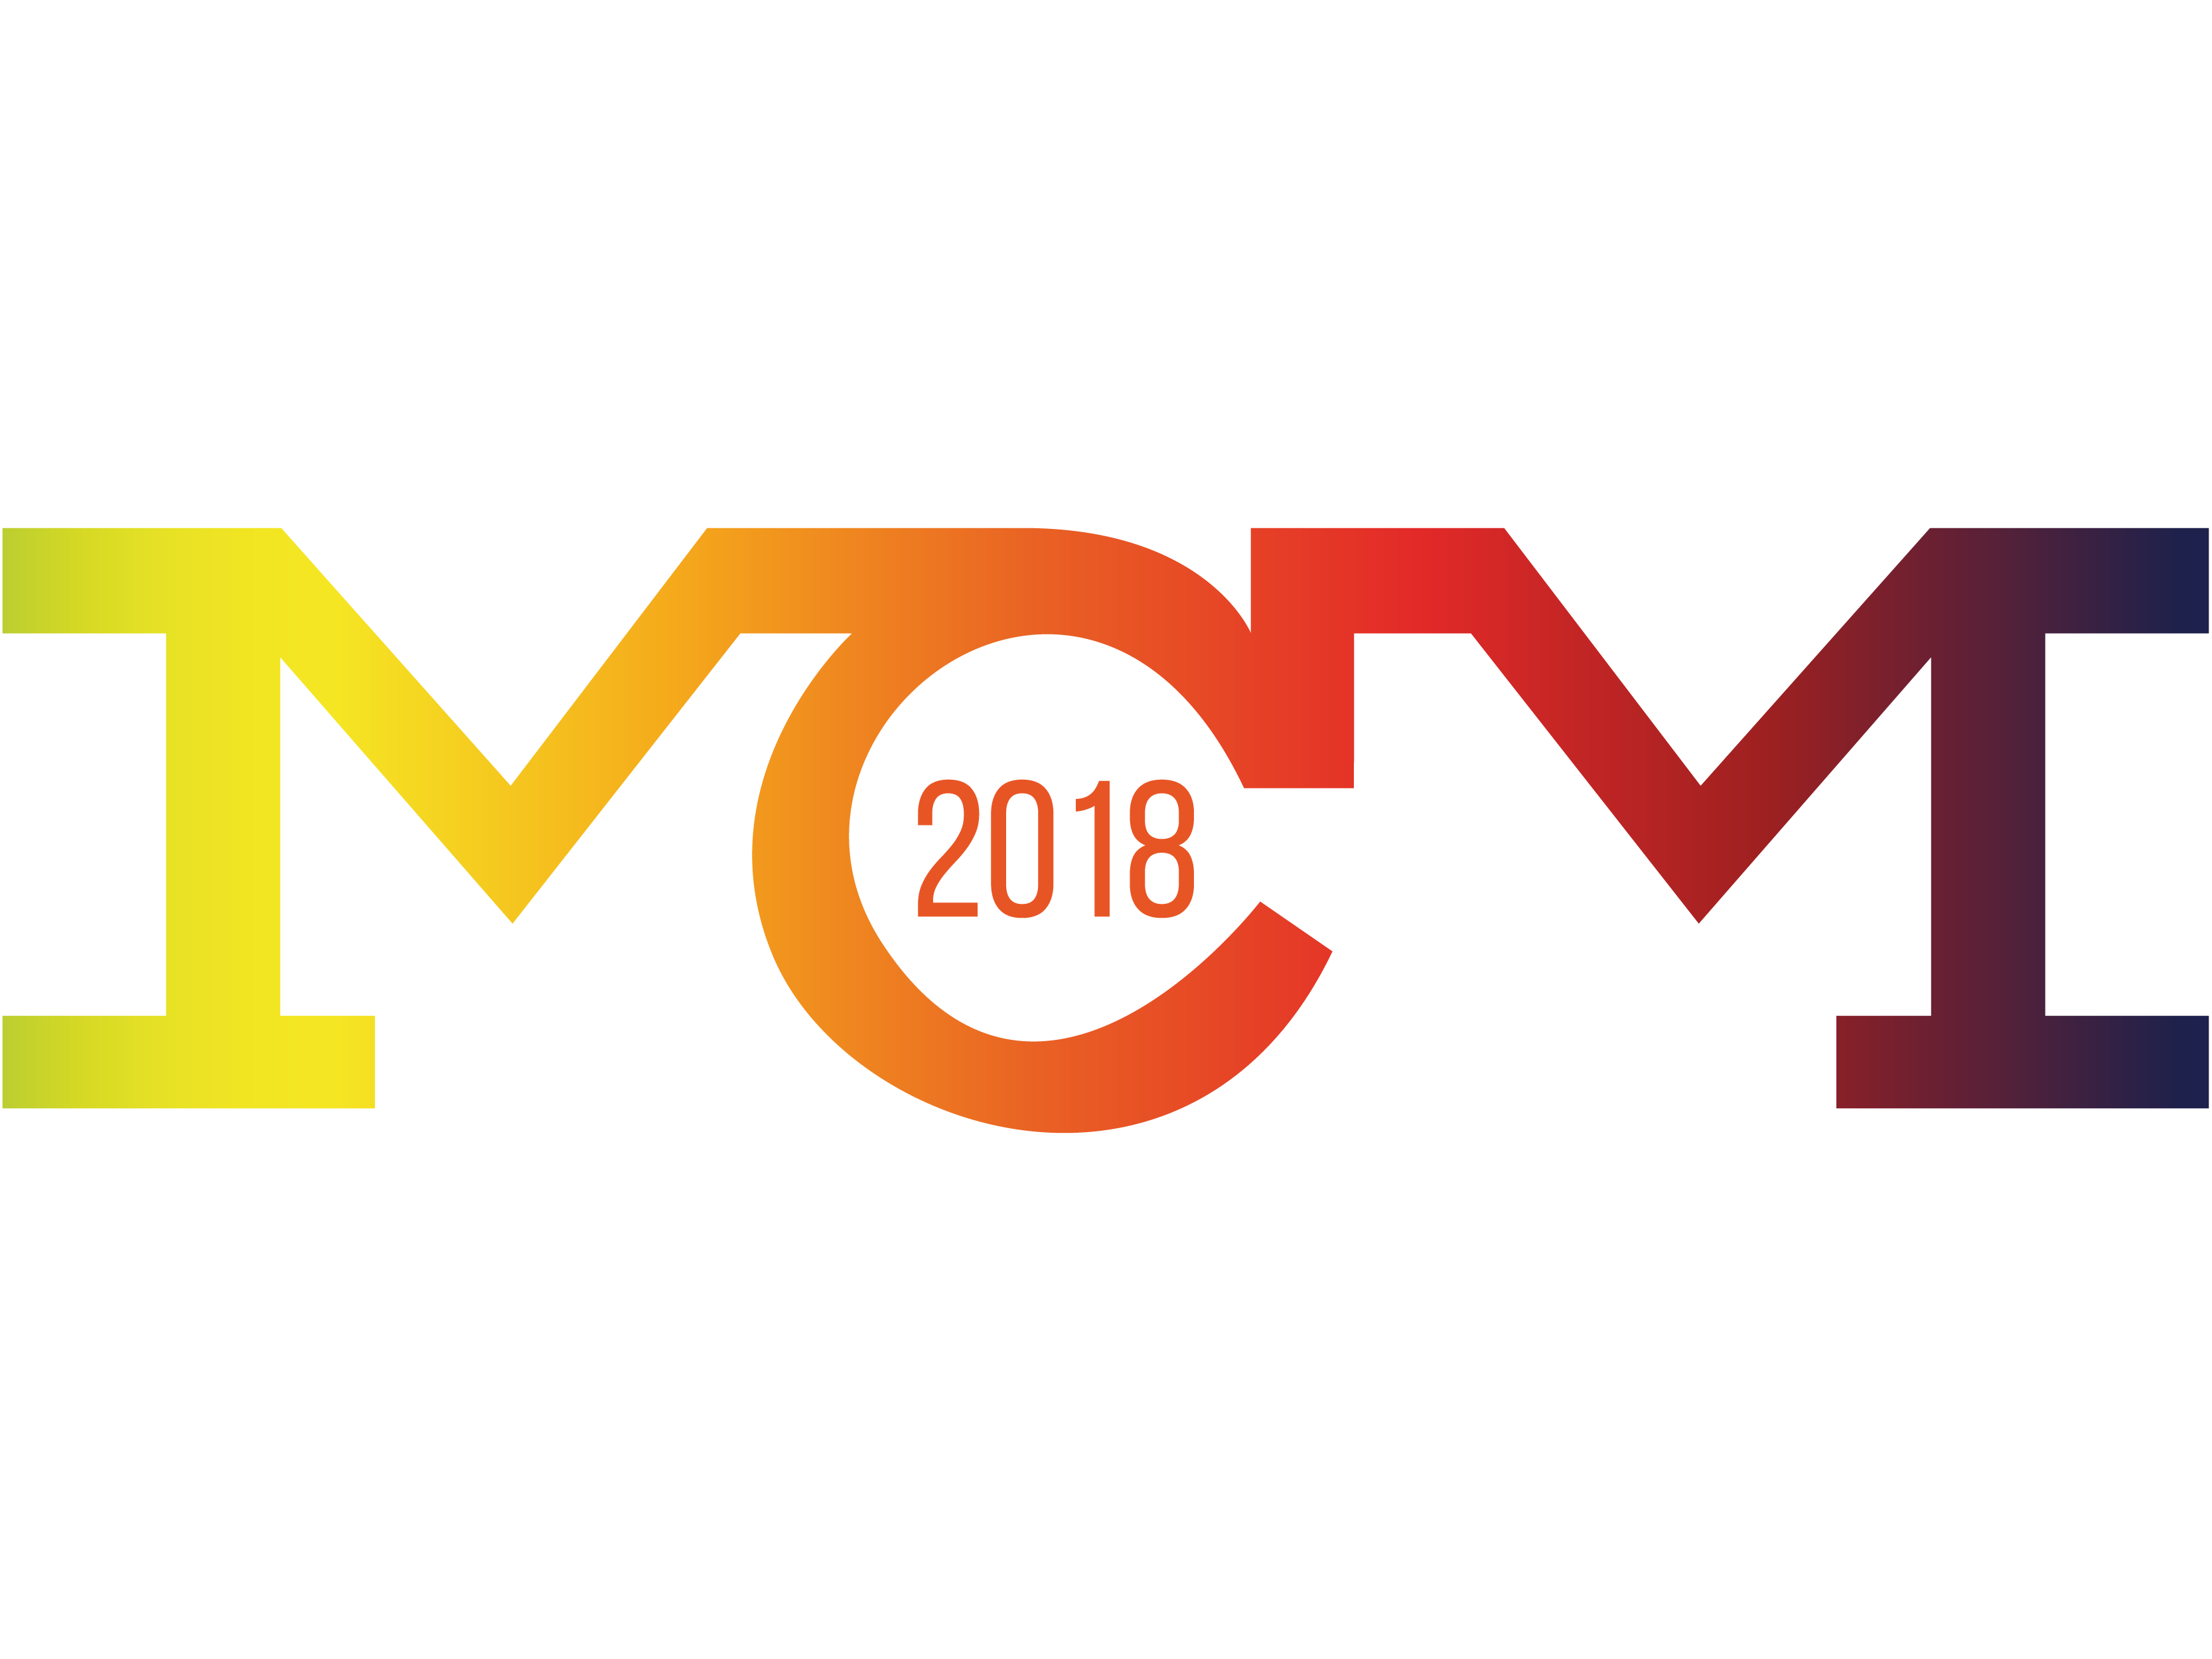 4th World Congress on Mechanical, Chemical, and Material Engineering, Madrid, Spain, August 16 - 18, 2018